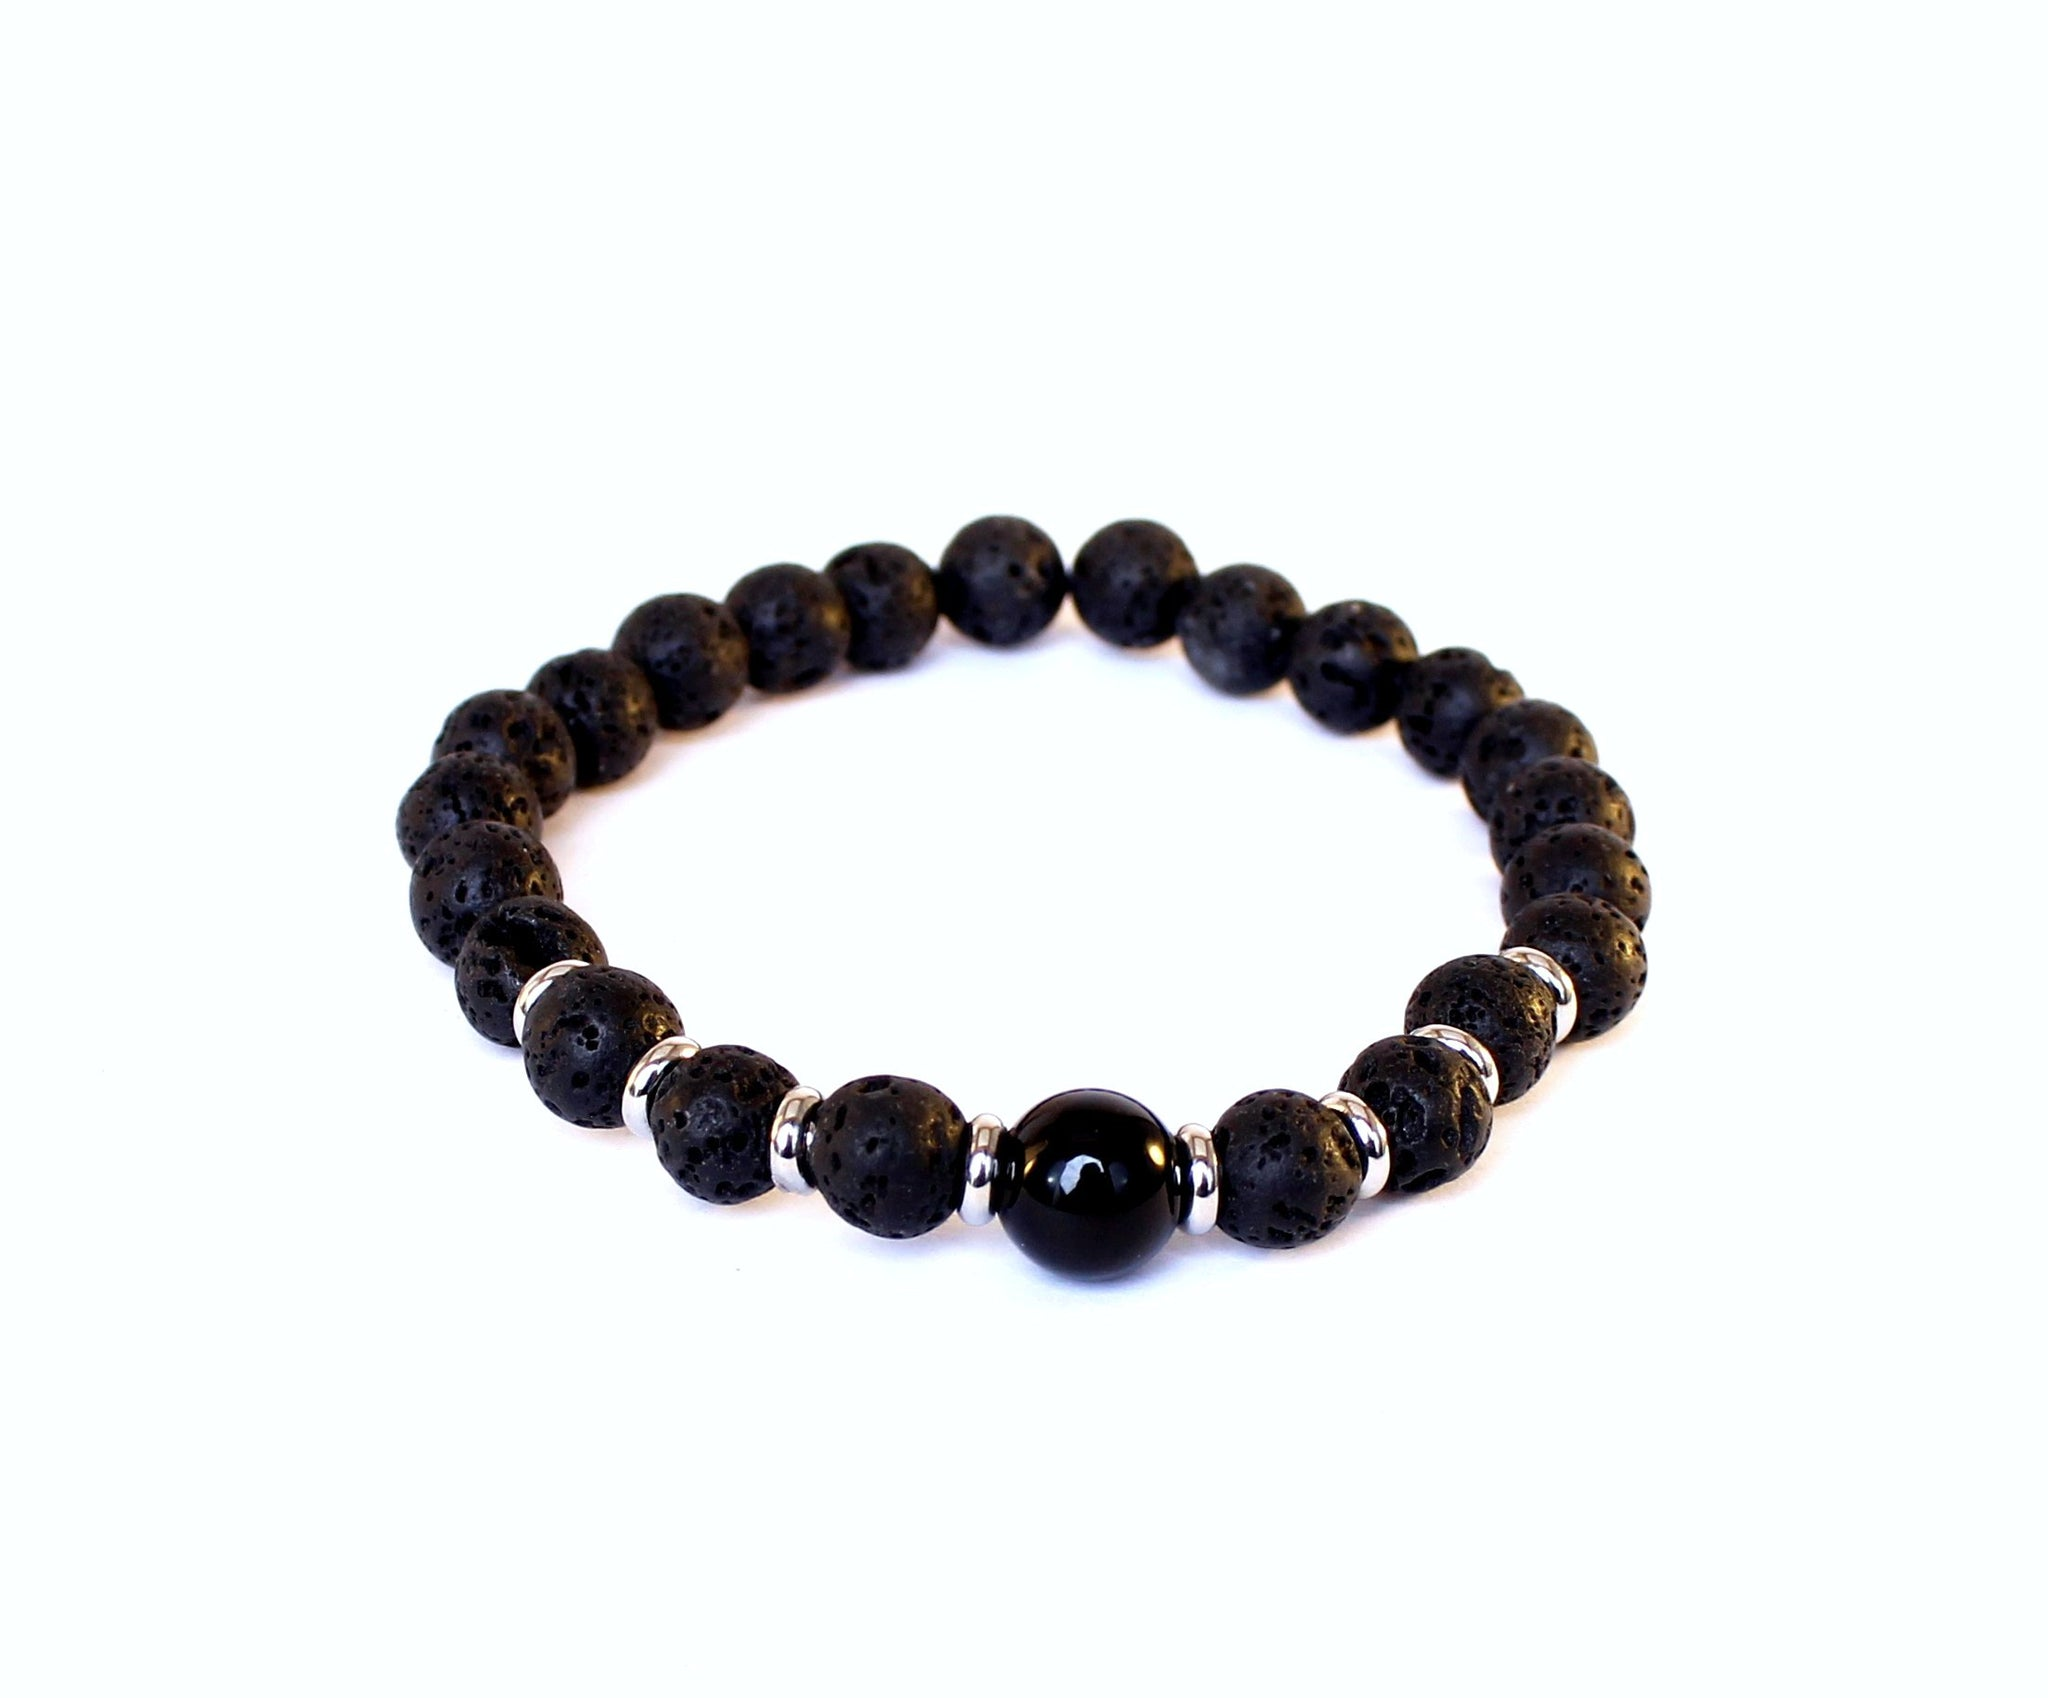 Black Lava and Black Obsidian Bracelet-Unisex